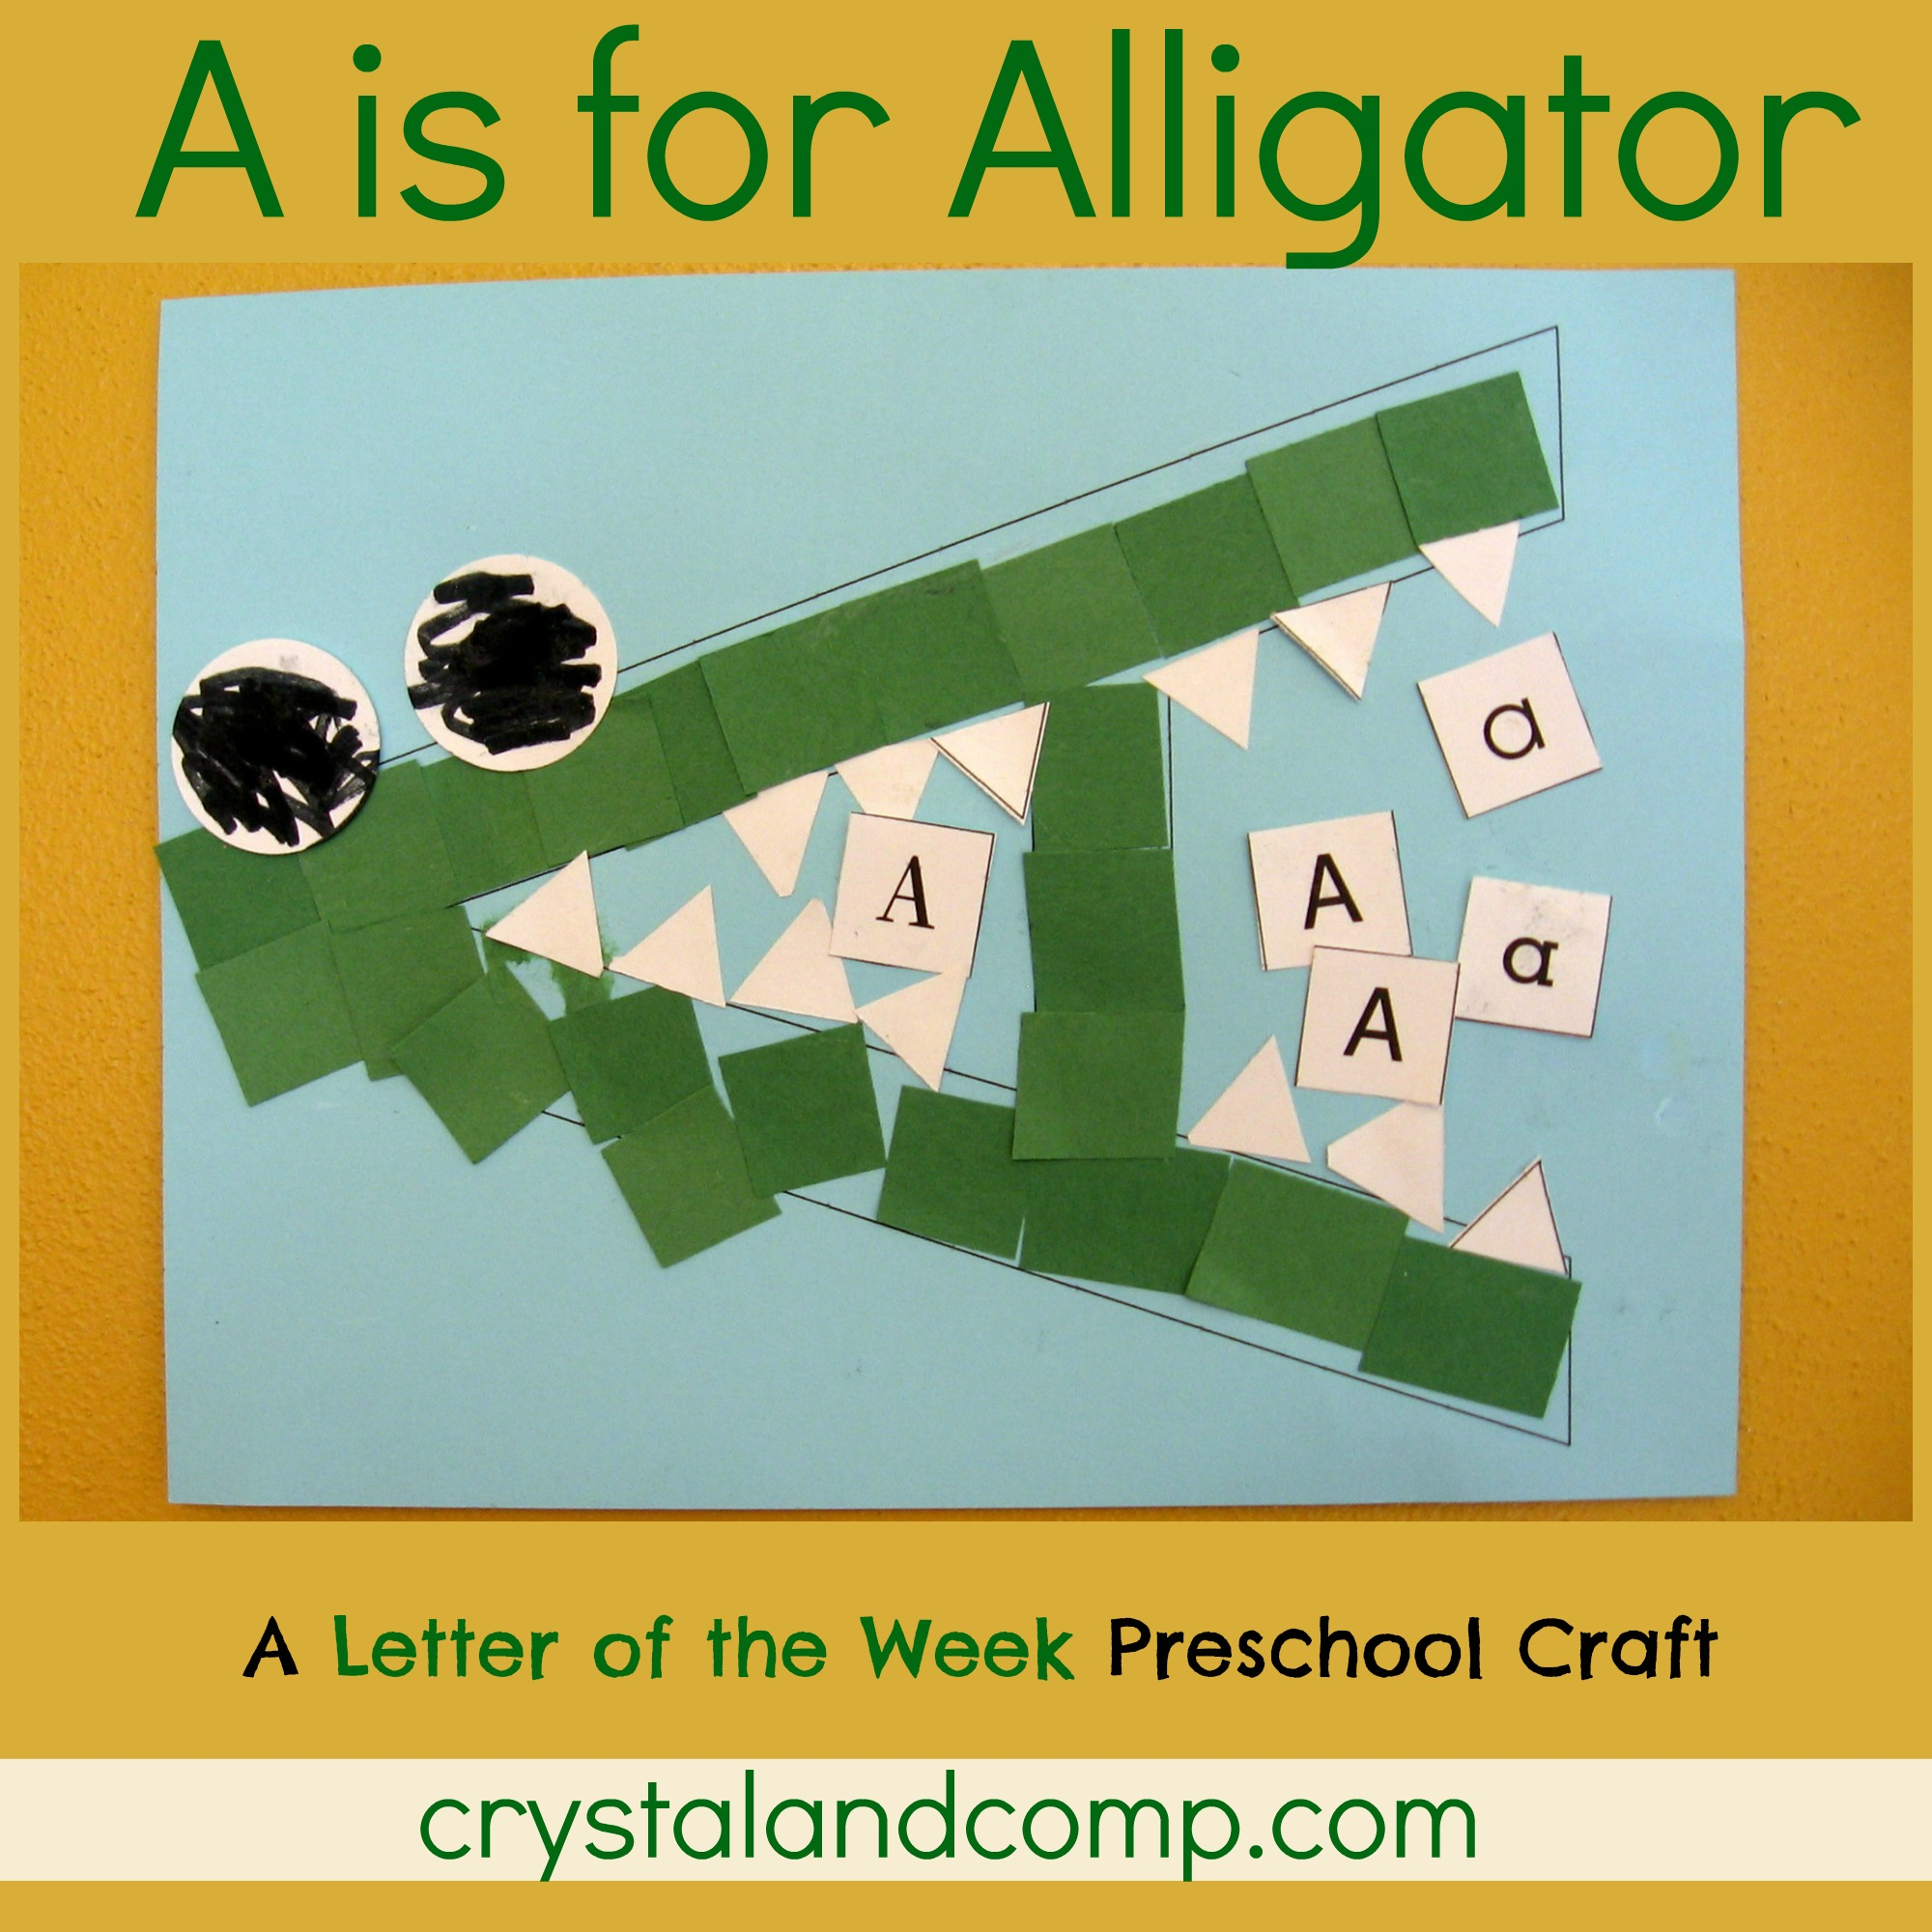 dltk craft for kids letter of the week a is for alligator - Dltk Crafts For Kids